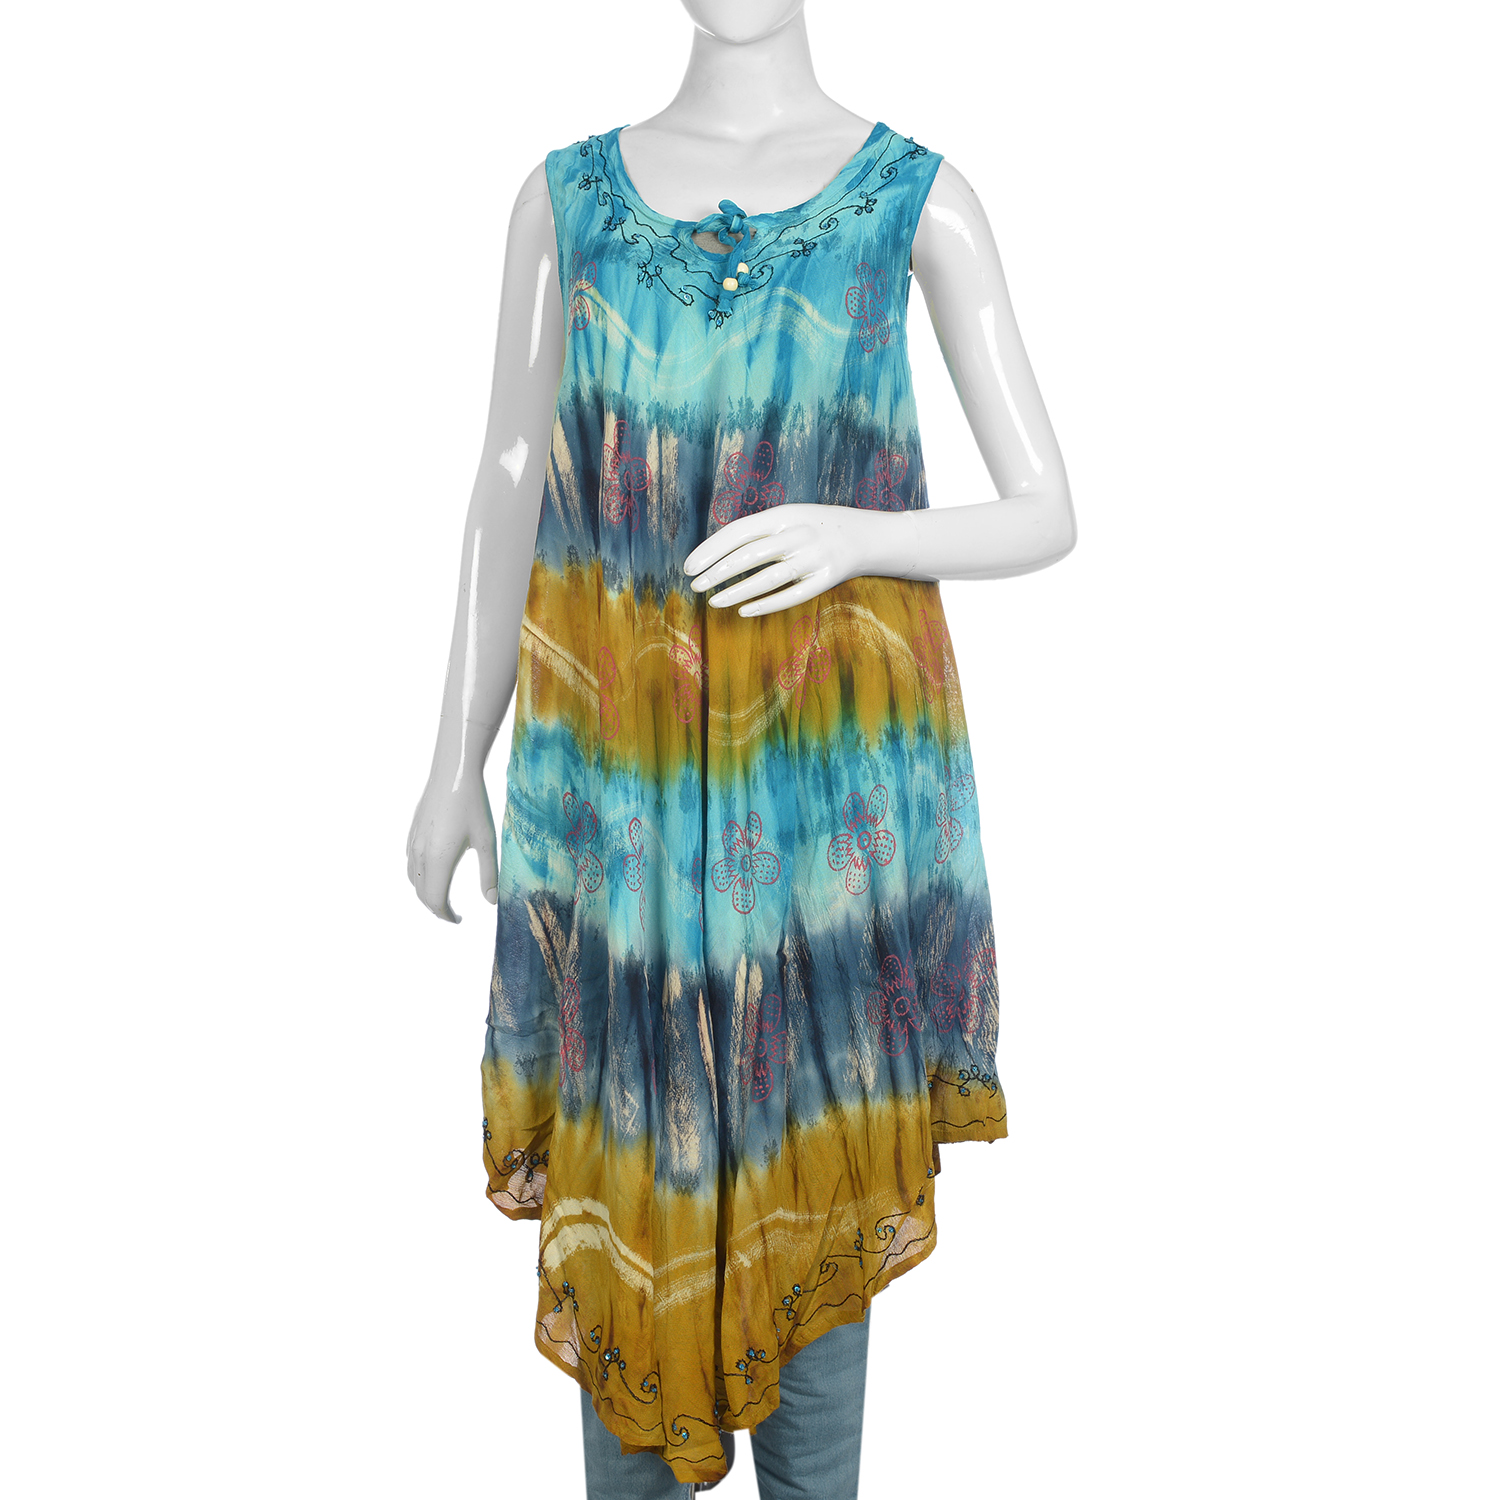 Blue, Multi Color Tie Dye Sleeveless Umbrella Dress (48x22